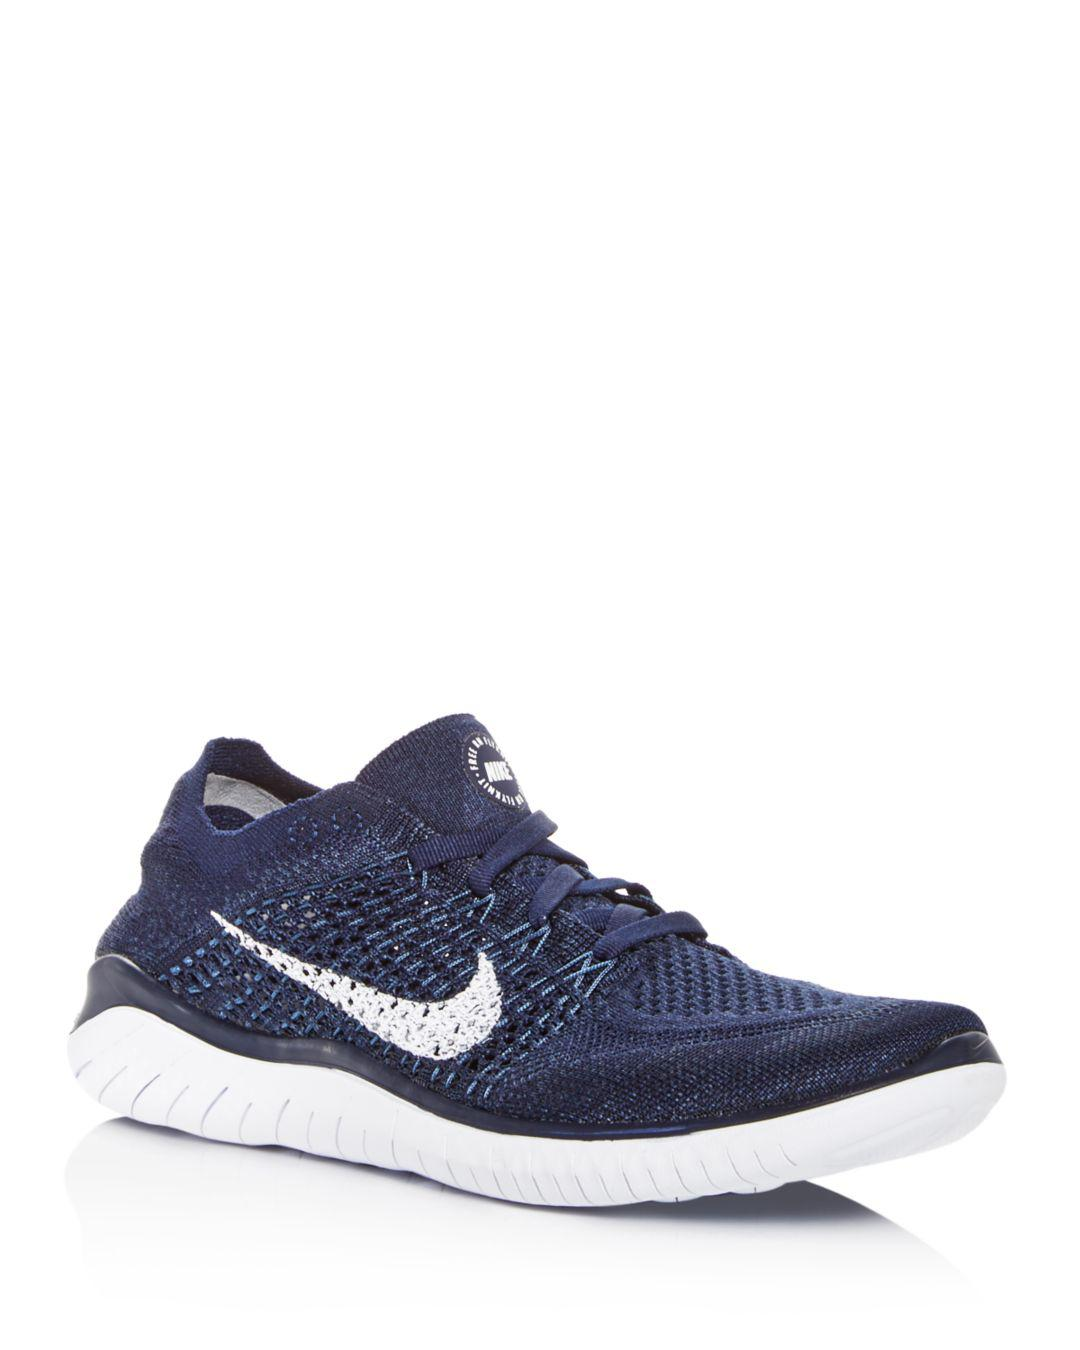 a2b5bd2e212a Lyst - Nike Men s Free Rn Flyknit Lace Up Sneakers in Blue for Men